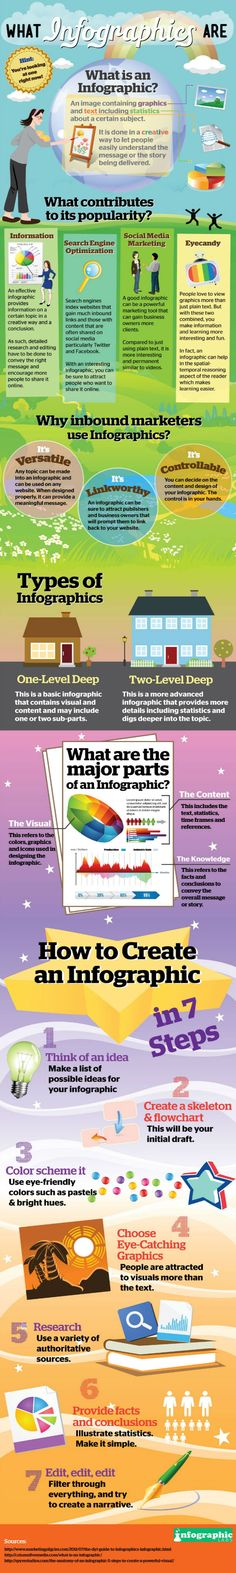 What makes a good Infographic? via @mashable